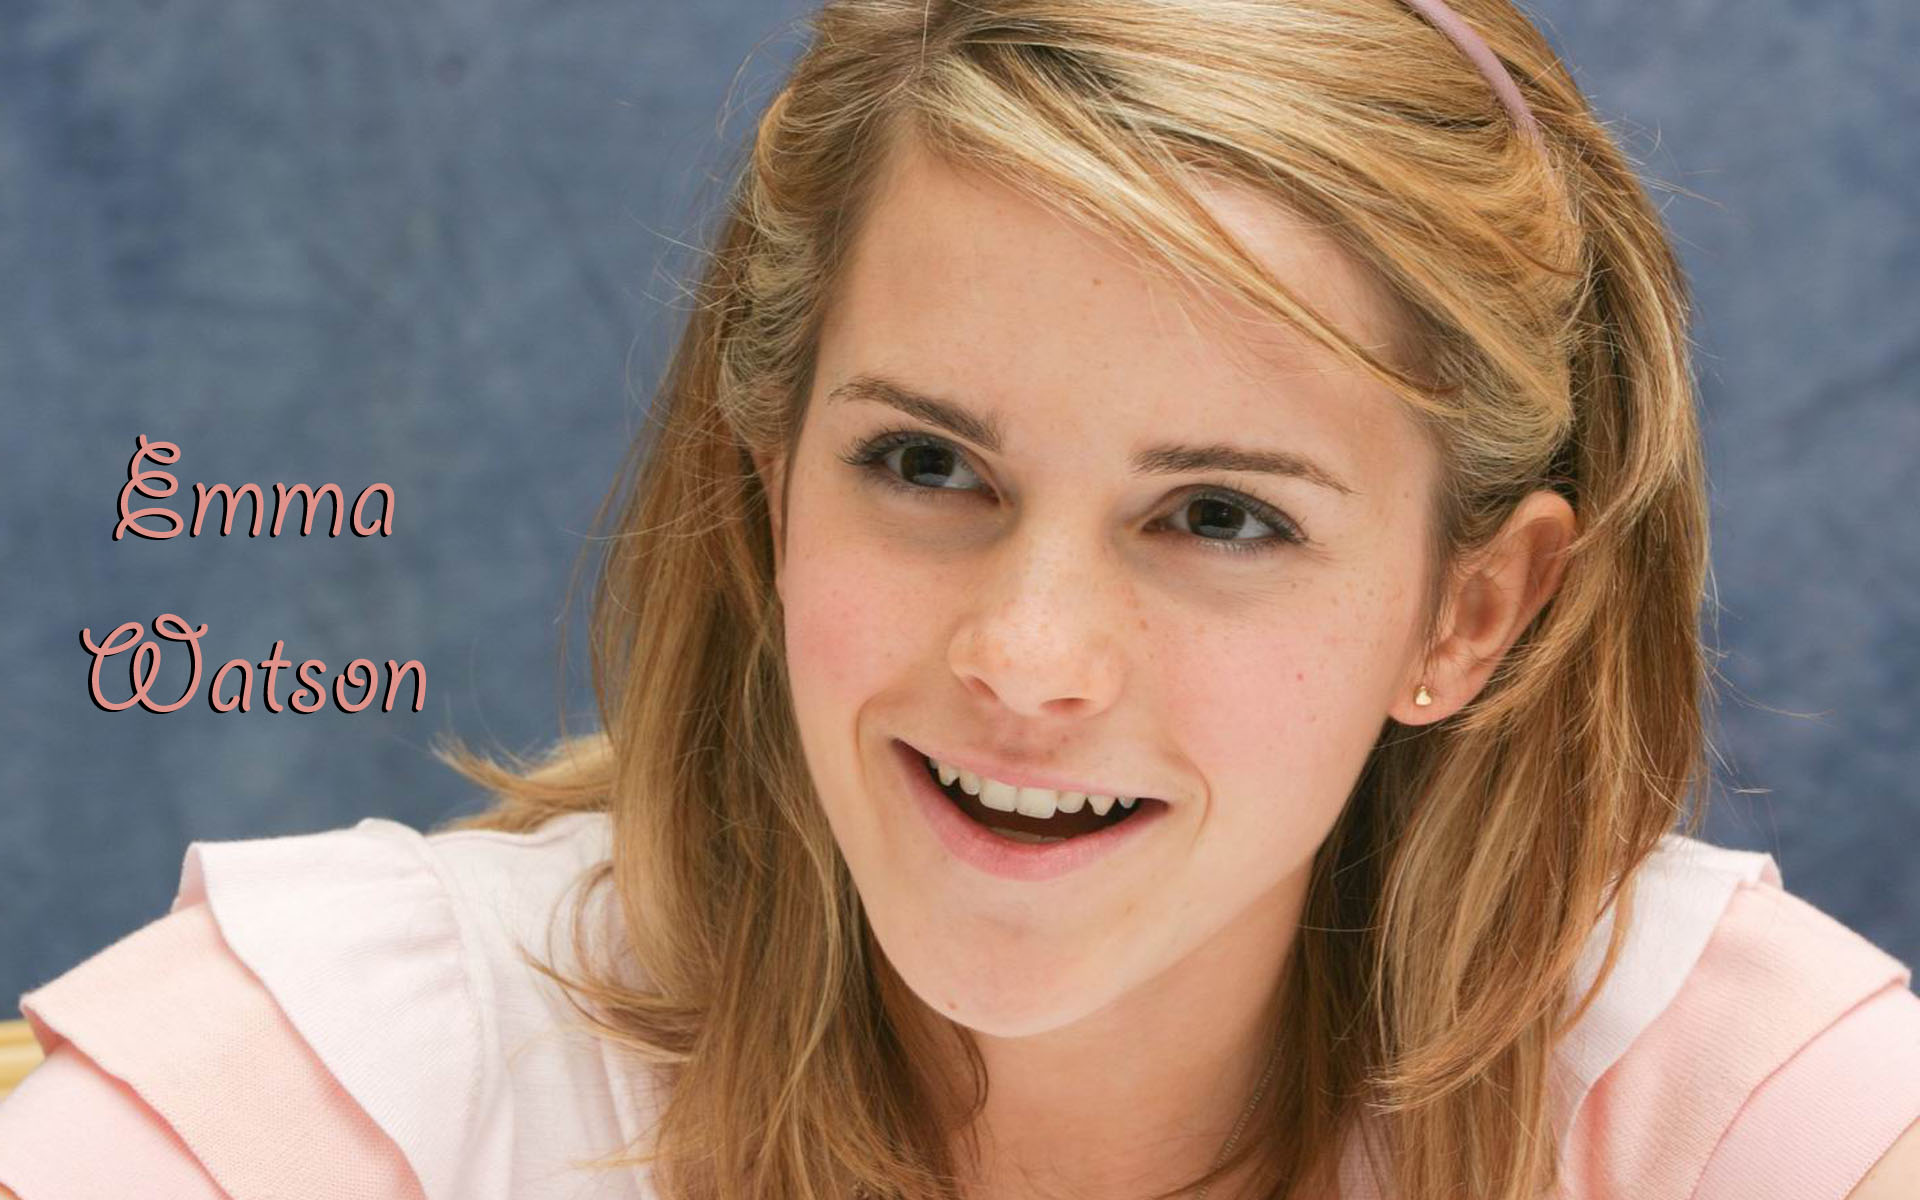 Emma Watson High Quality HD Wide 493.47 Kb